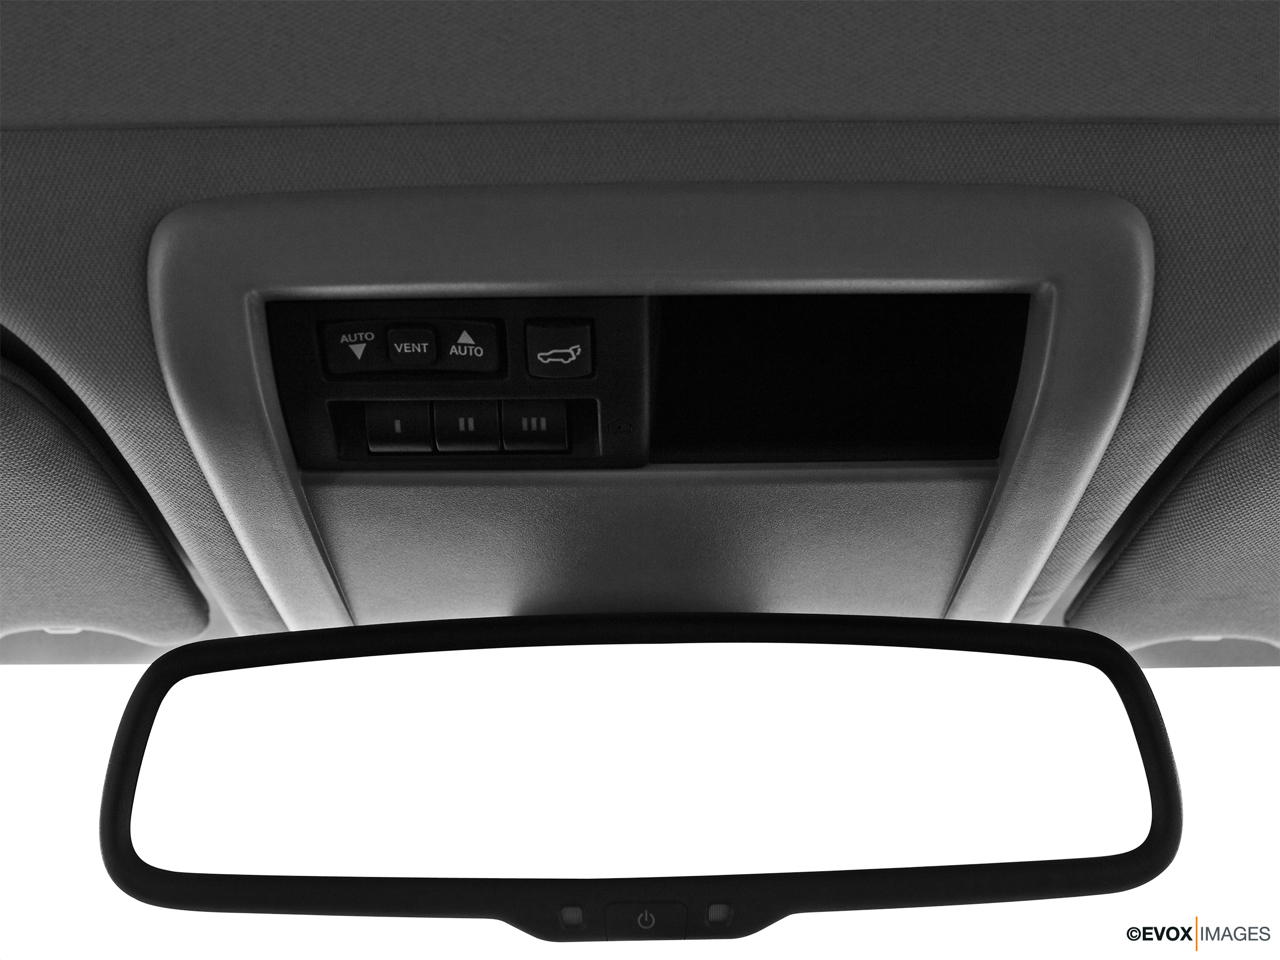 2010 Jeep Commander Limited Courtesy lamps/ceiling controls.